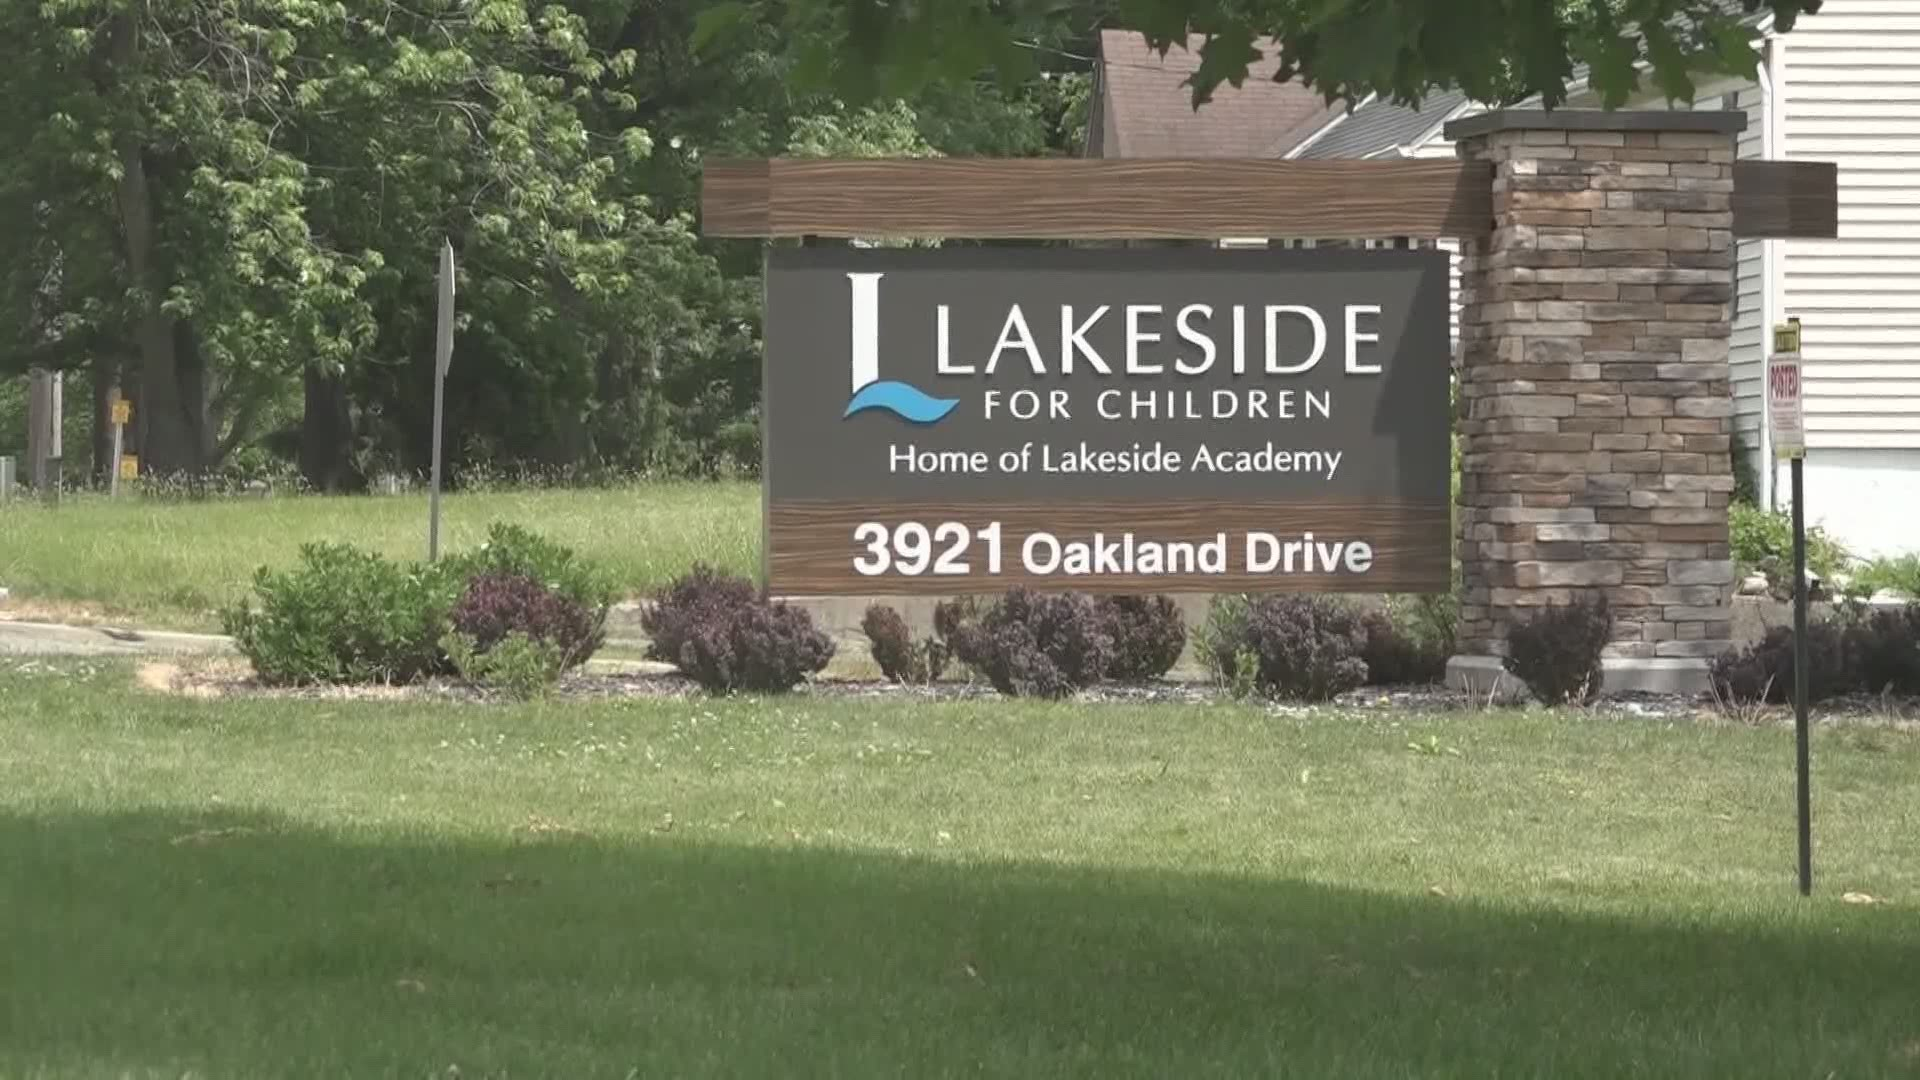 3 Charged With Manslaughter For Death Of Teen At Kalamazoo Youth Home Wzzm13 Com